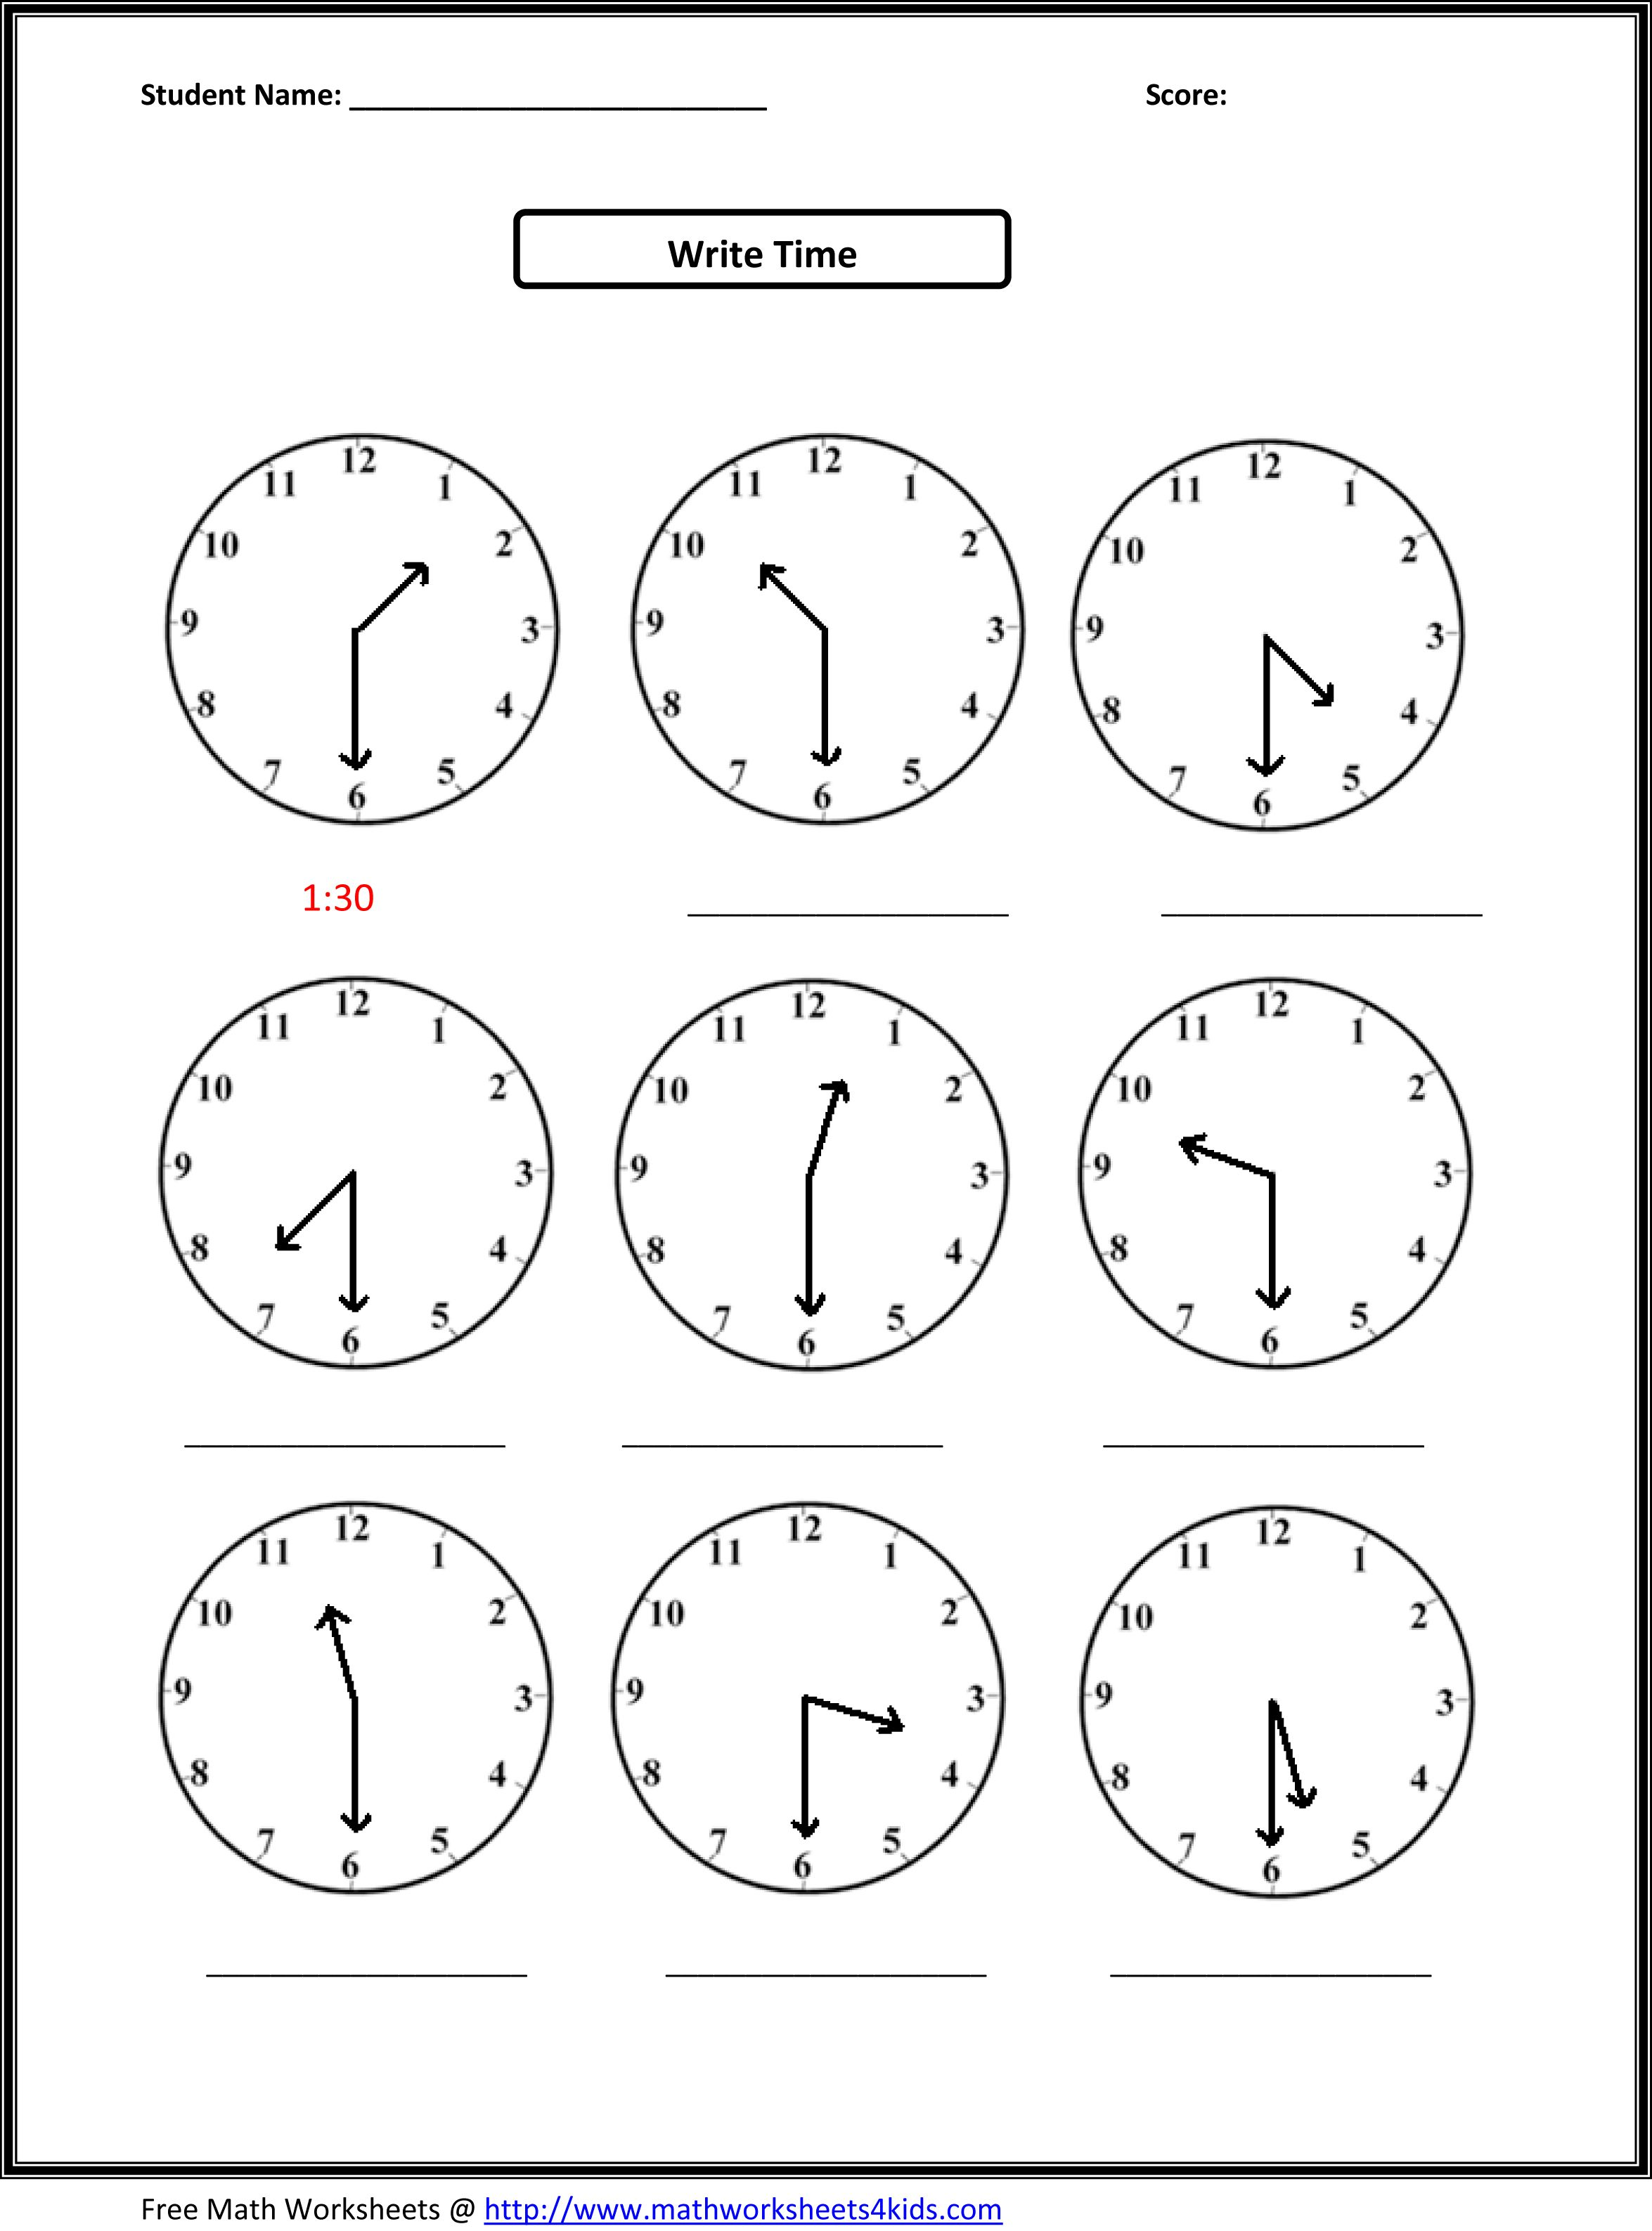 Weirdmailus  Surprising Worksheet On Time For Grade   Reocurent With Lovely Free Printable Telling Time Worksheets Nd Grade  Reocurent With Attractive Kg Worksheets Also Factorising Quadratics Worksheet In Addition Blends Worksheets First Grade And Write A Poem Worksheet As Well As Grade  Fun Worksheets Additionally Worksheets On Ancient Greece From Reocurentcom With Weirdmailus  Lovely Worksheet On Time For Grade   Reocurent With Attractive Free Printable Telling Time Worksheets Nd Grade  Reocurent And Surprising Kg Worksheets Also Factorising Quadratics Worksheet In Addition Blends Worksheets First Grade From Reocurentcom